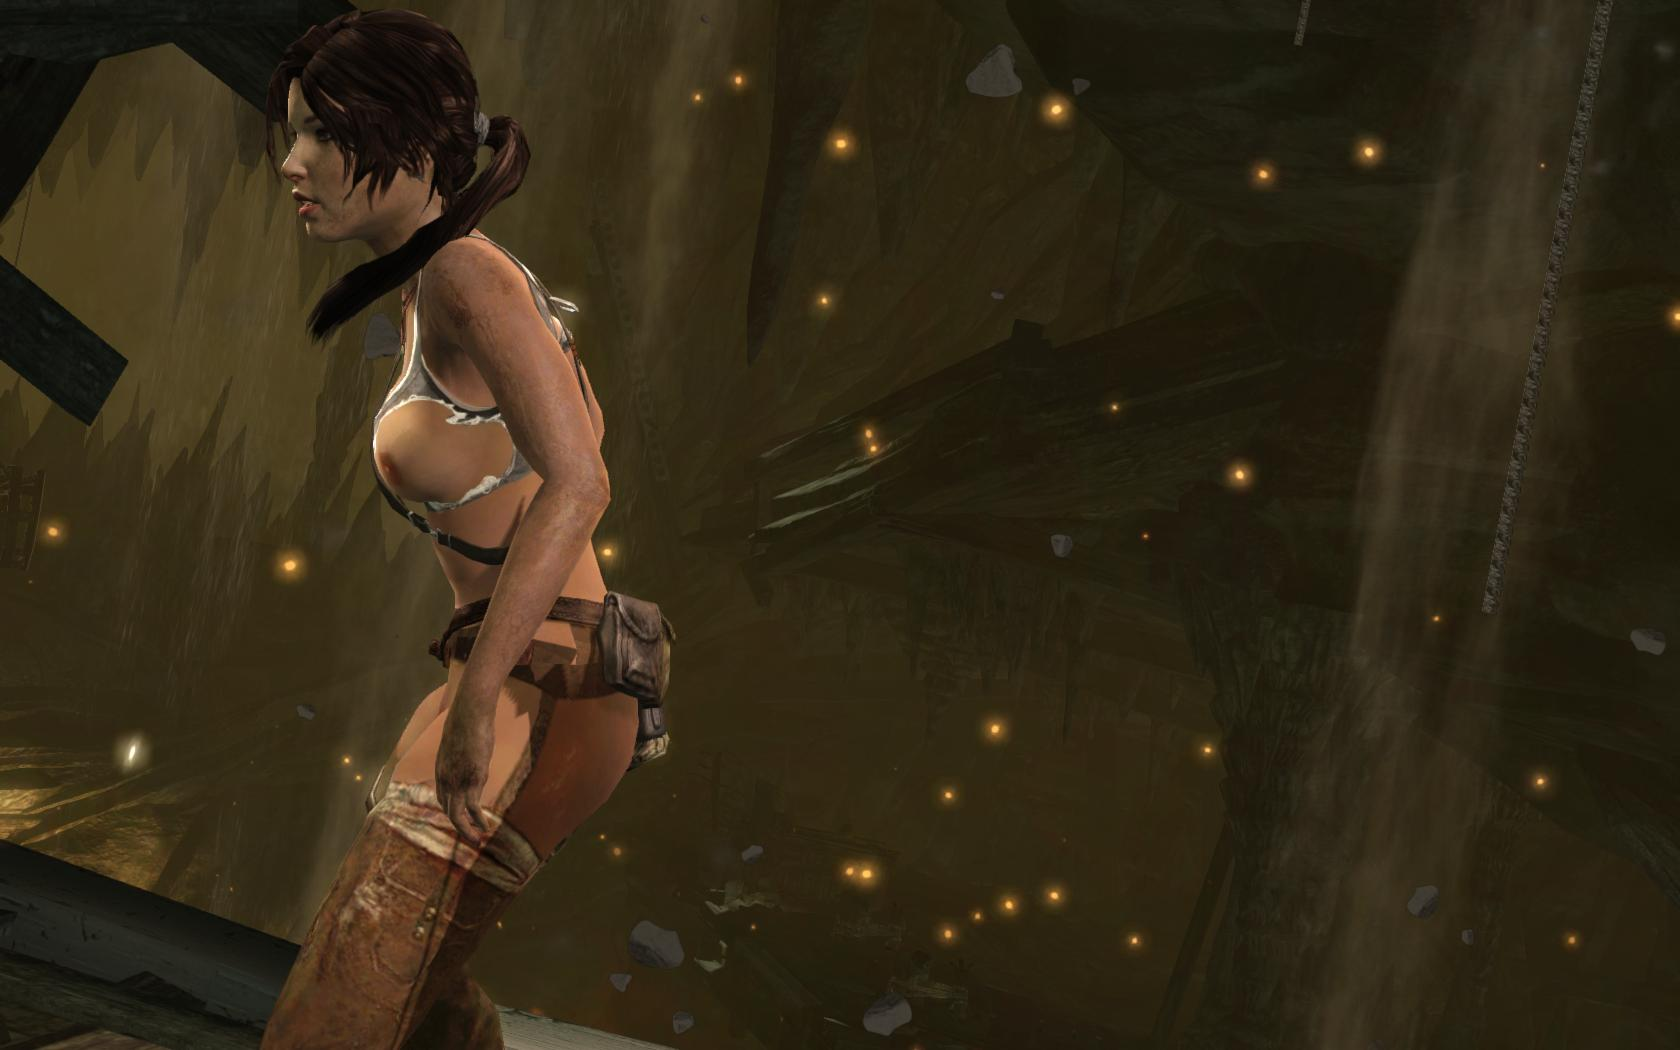 from Gauge mod lara croft nude